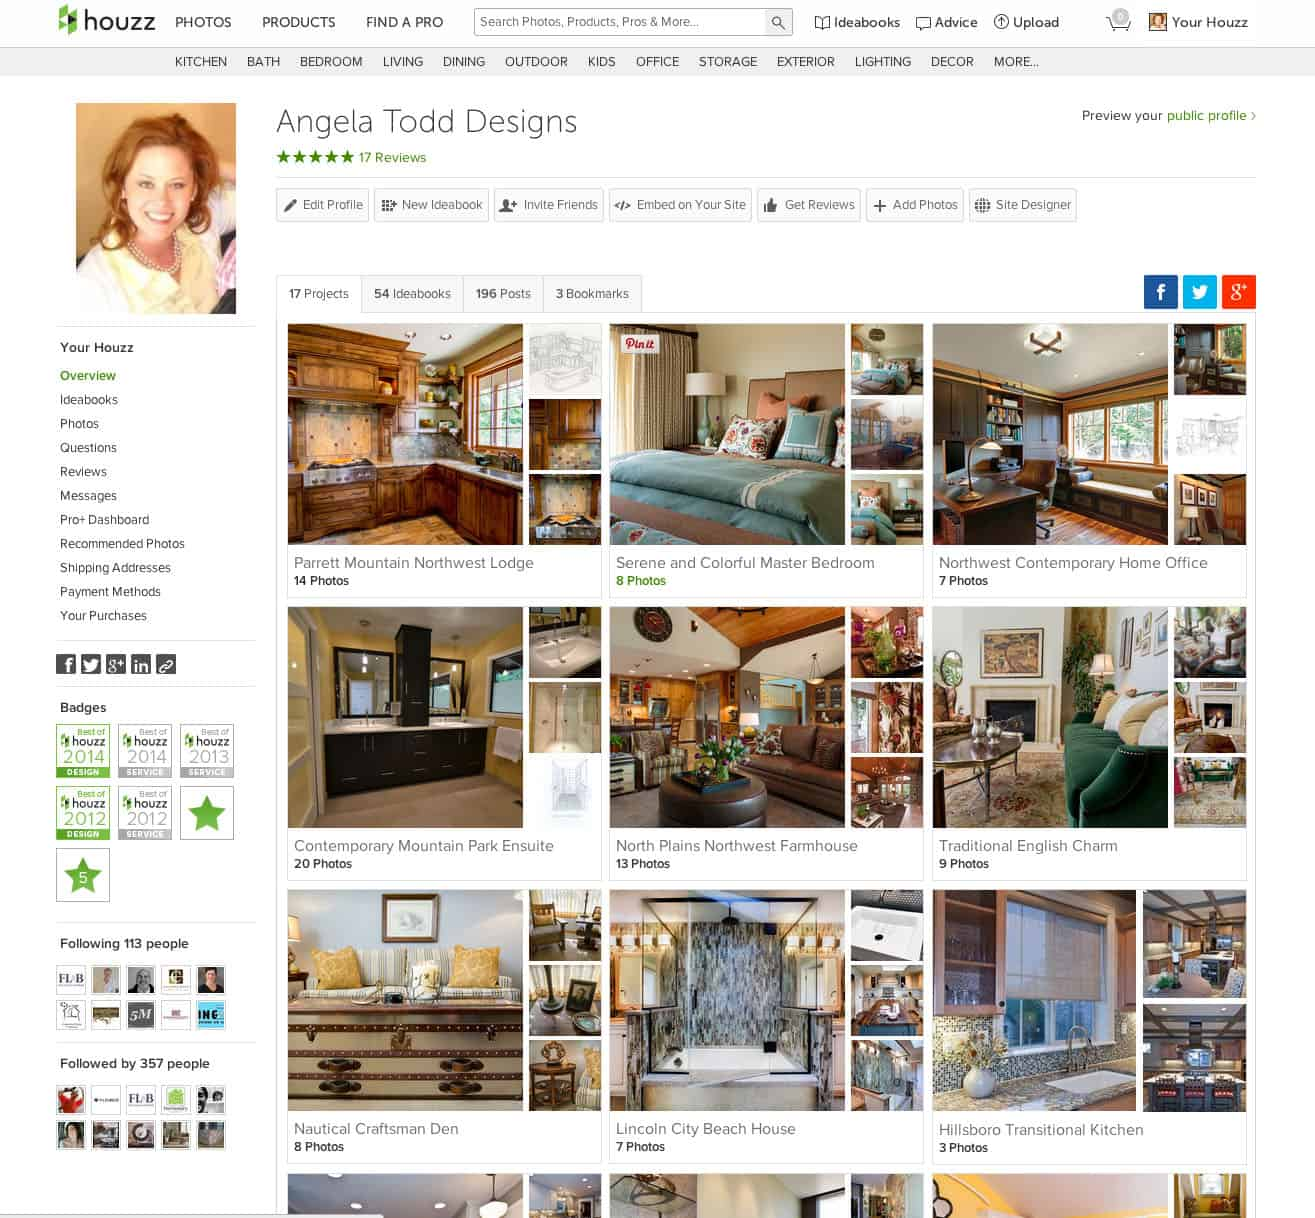 Best of Houzz 2014 – Angela Todd Designs